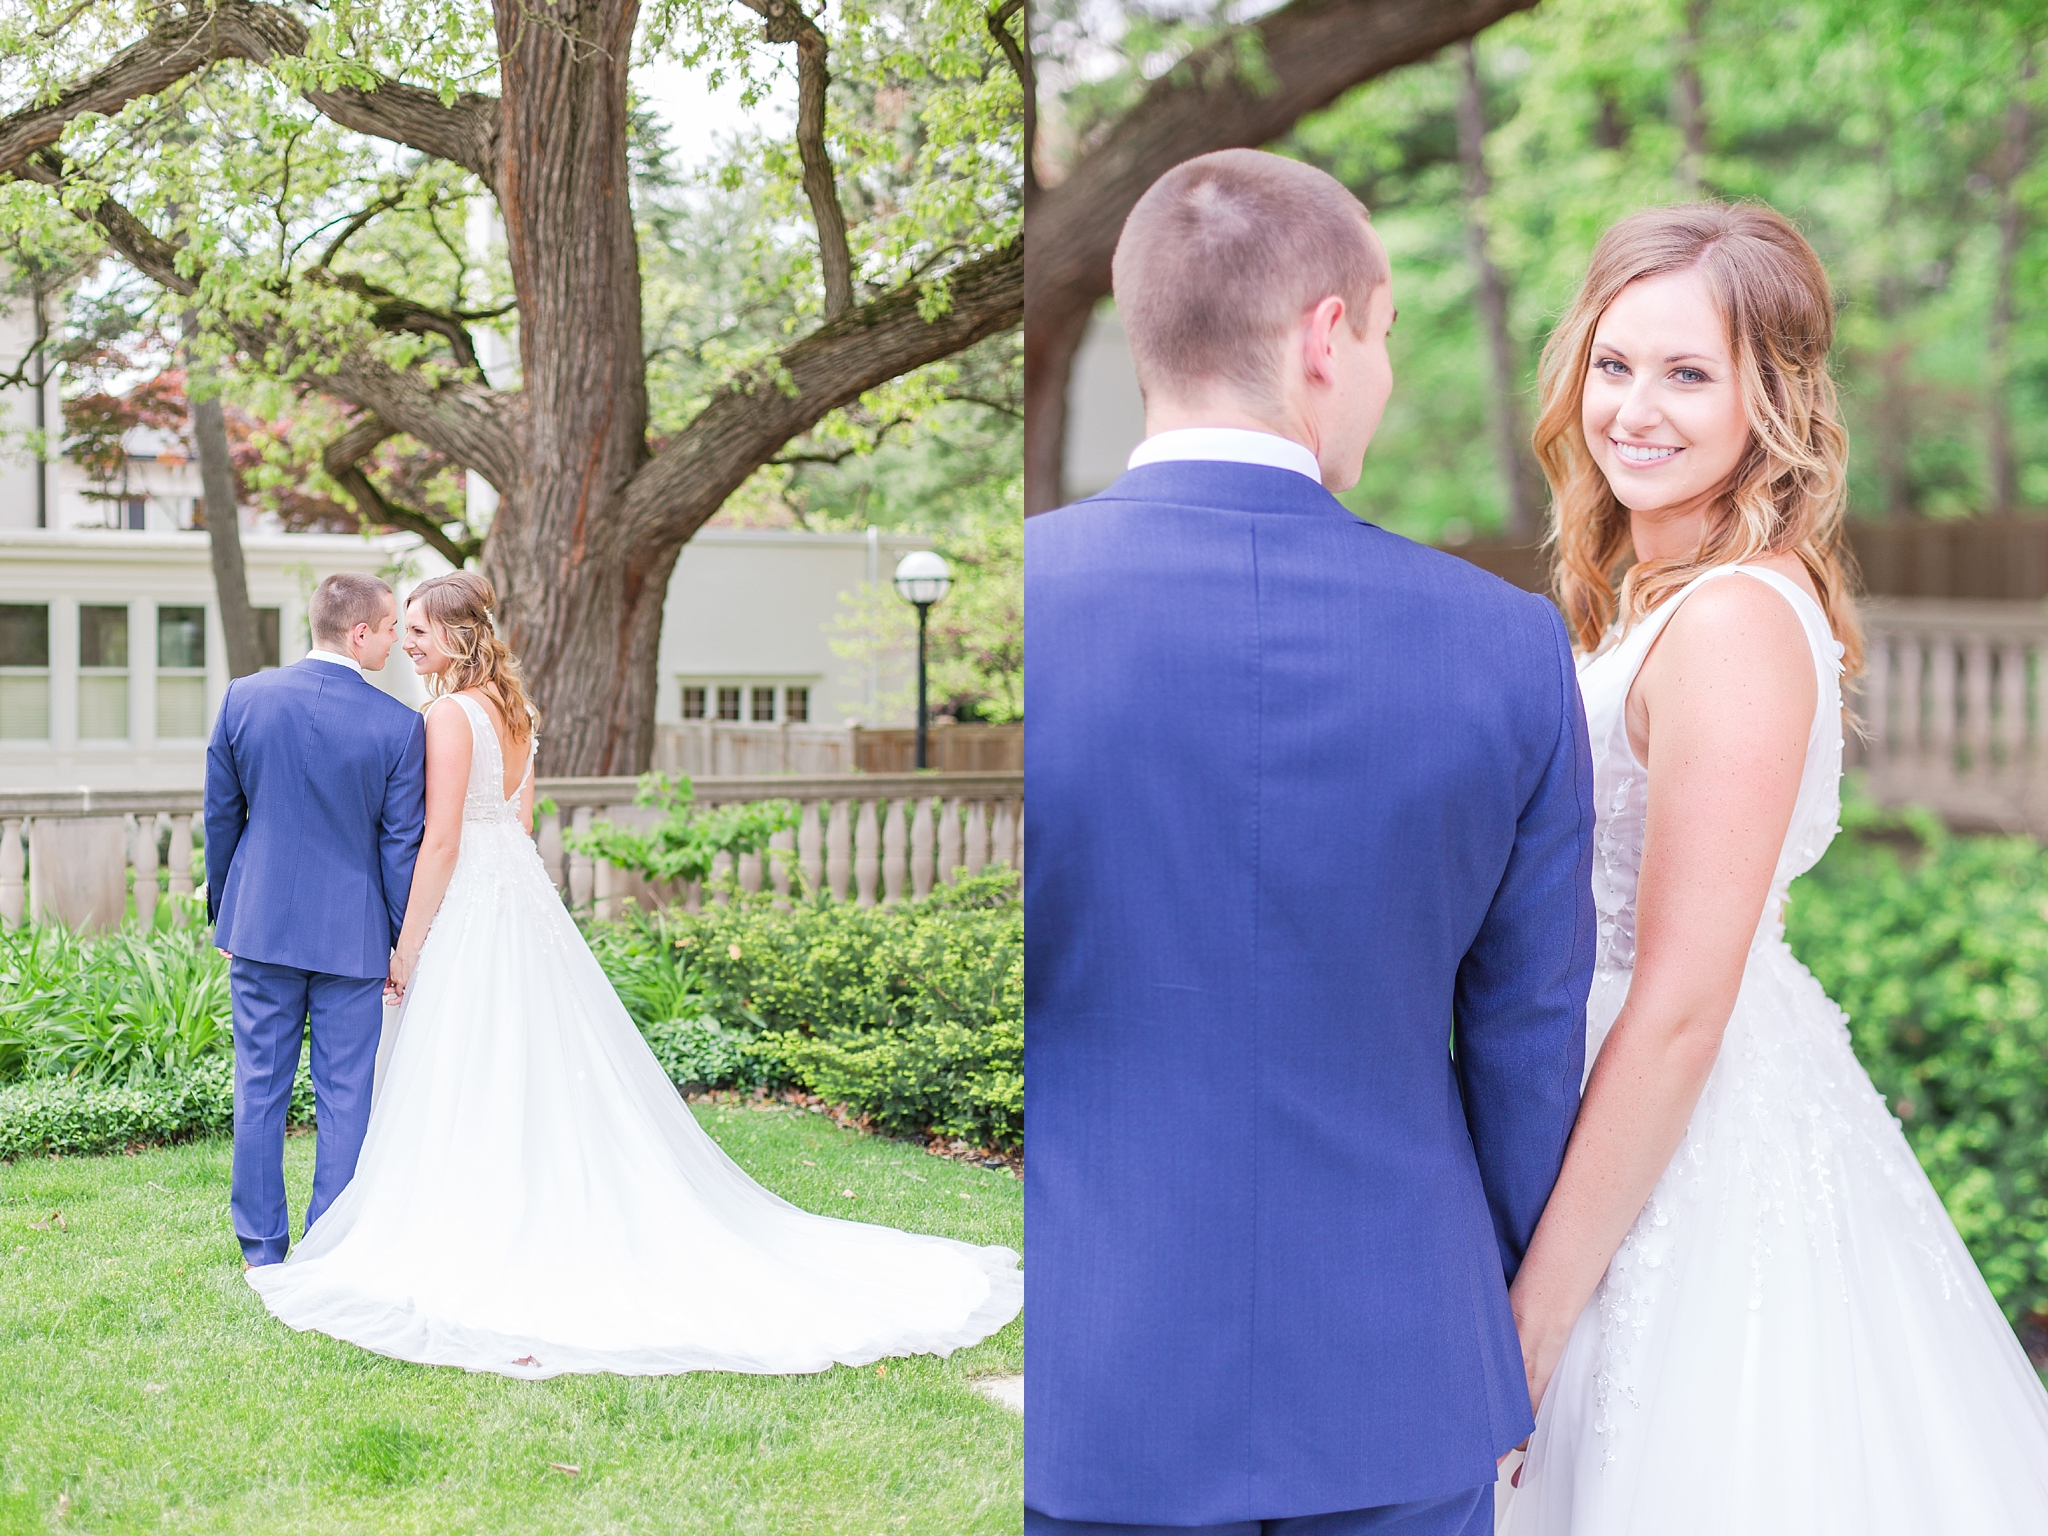 joyful-candid-laid-back-wedding-photos-in-ann-arbor-michigan-and-at-the-eagle-crest-golf-resort-by-courtney-carolyn-photography_0056.jpg